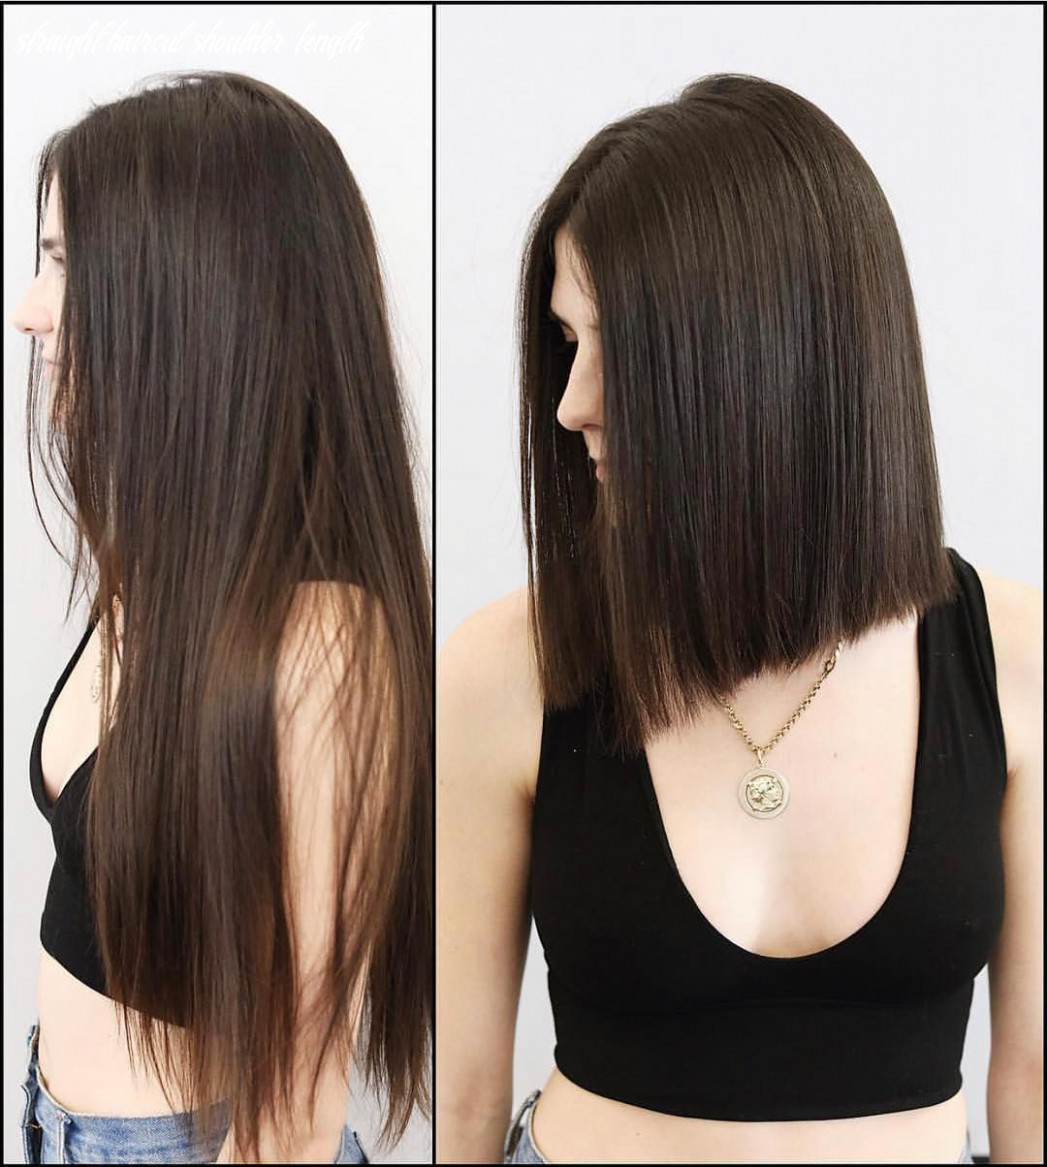 Pin on hairstyles easy ideas straight haircut shoulder length